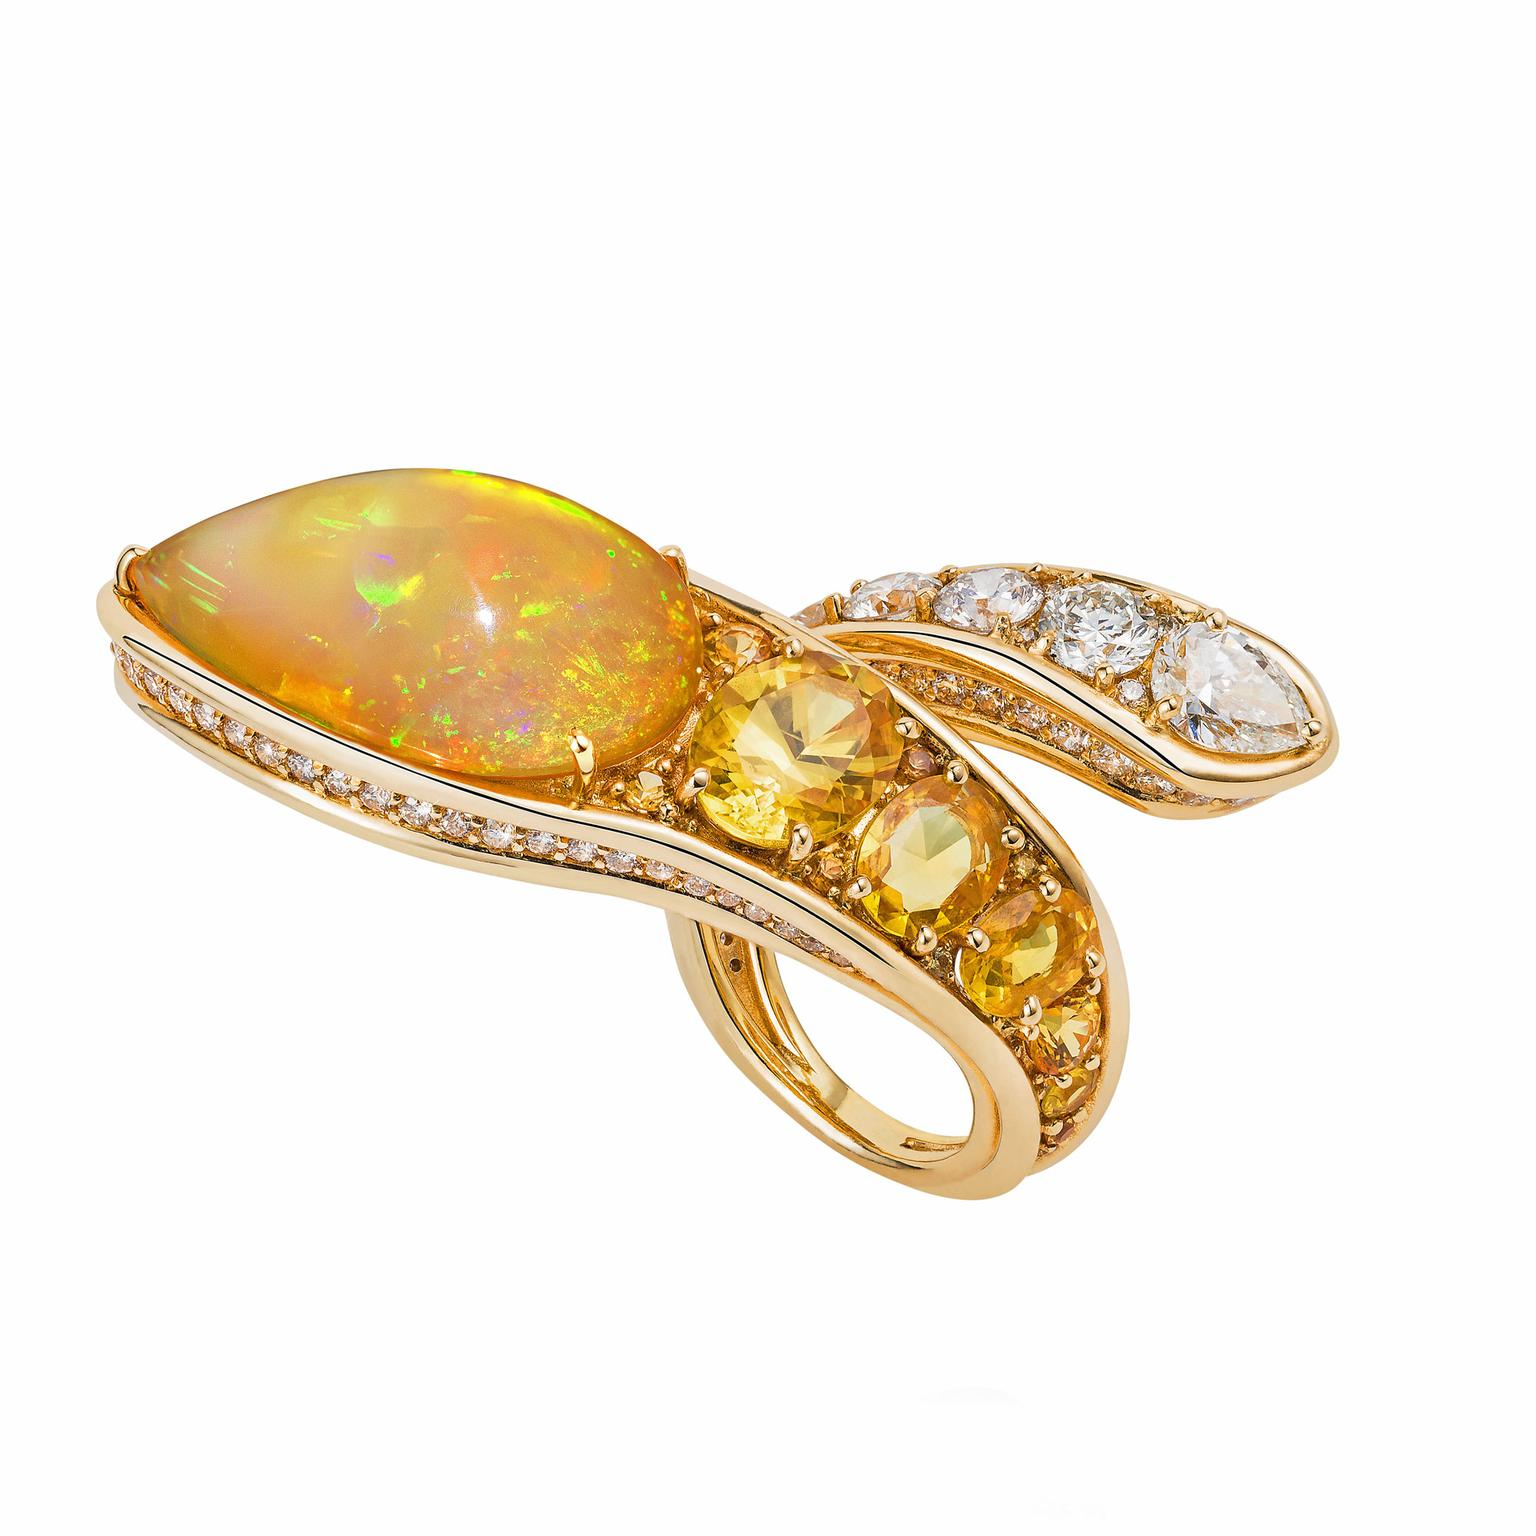 Fernando Jorge opal and diamond ring